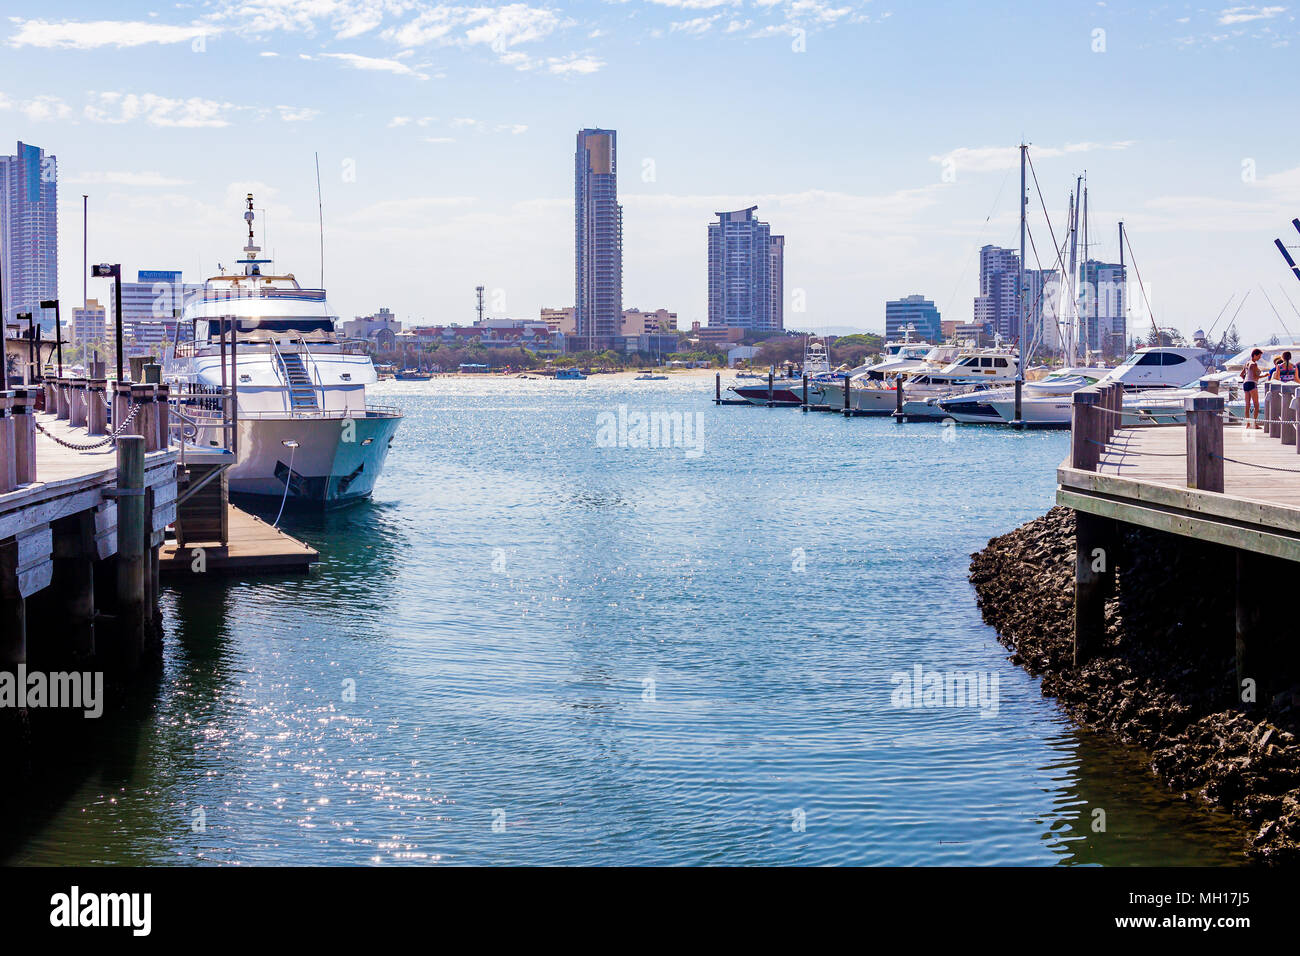 GOLD COAST, AUSTRALIA - January 3rd, 2014: detail of the Marina Mirage area in SUrfers Paradise, a popular shopping and entertainement destination on  - Stock Image